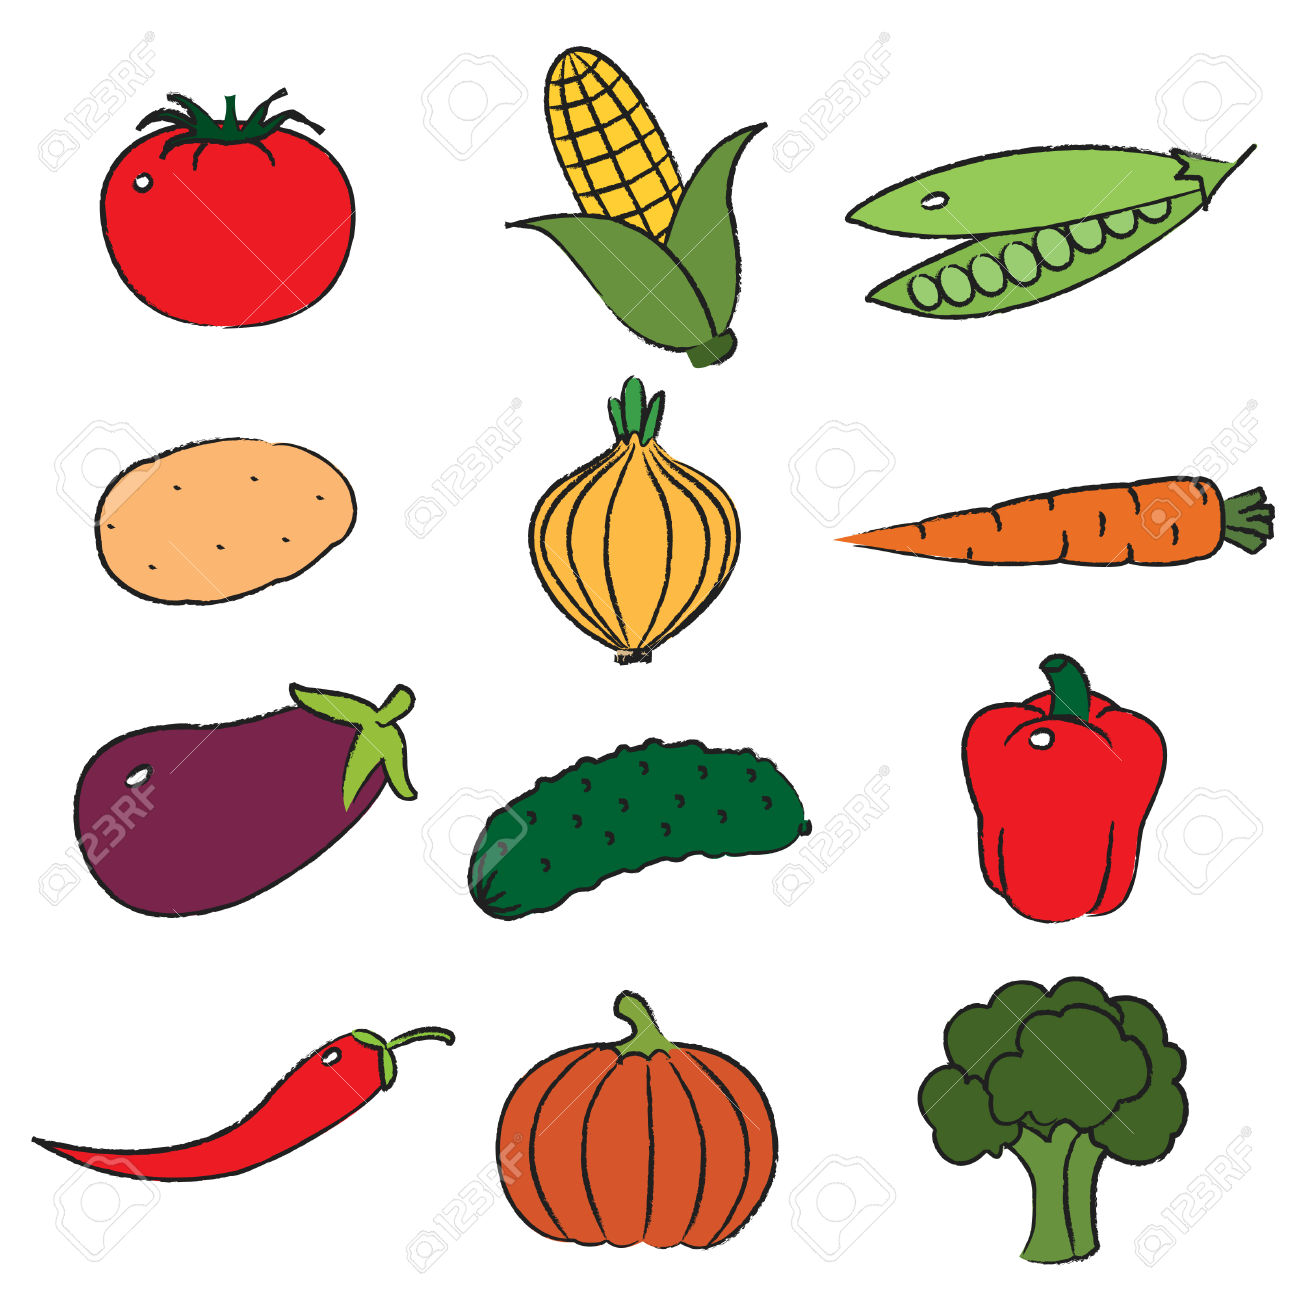 Clipart vegetables vege. Summer